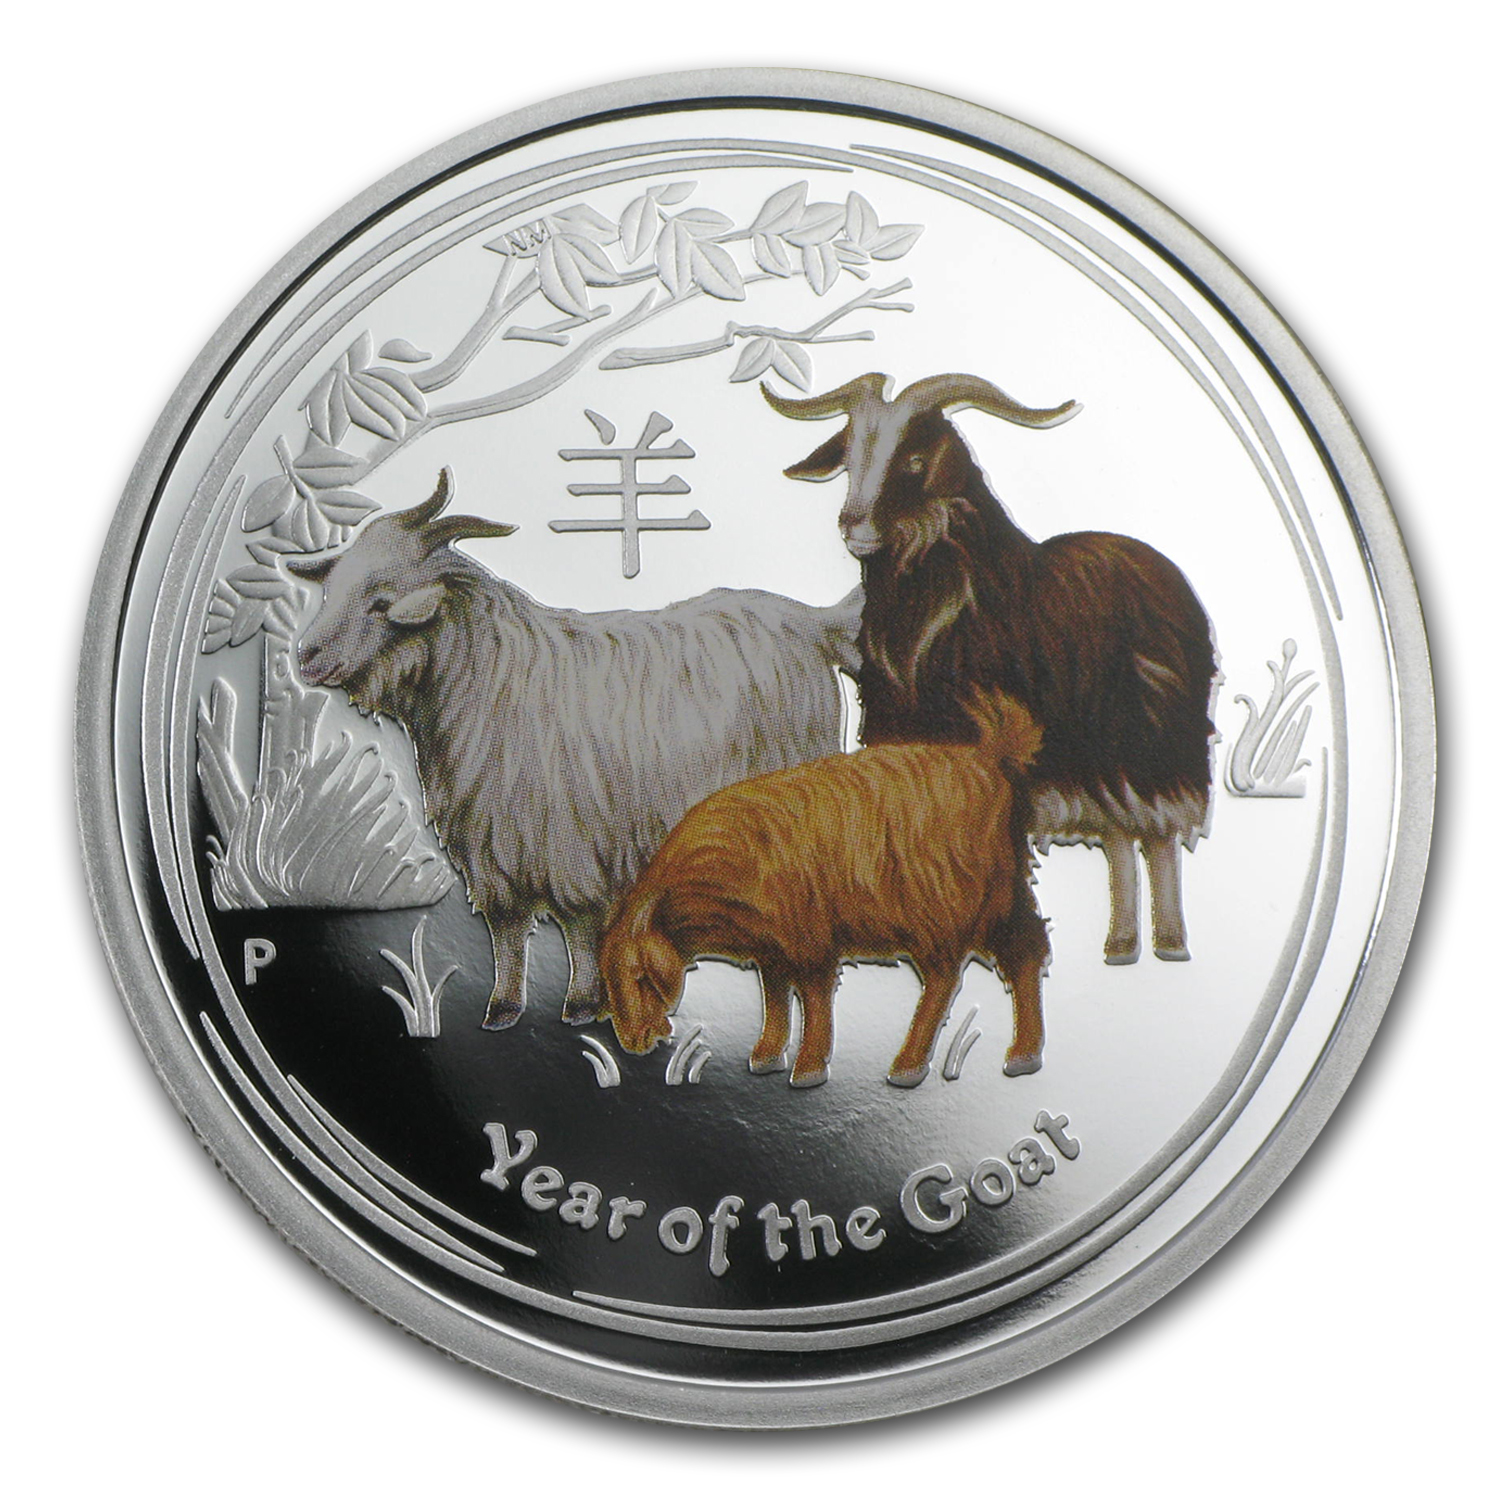 2015 Australia 1/2 oz Silver Lunar Goat Proof (Colorized)